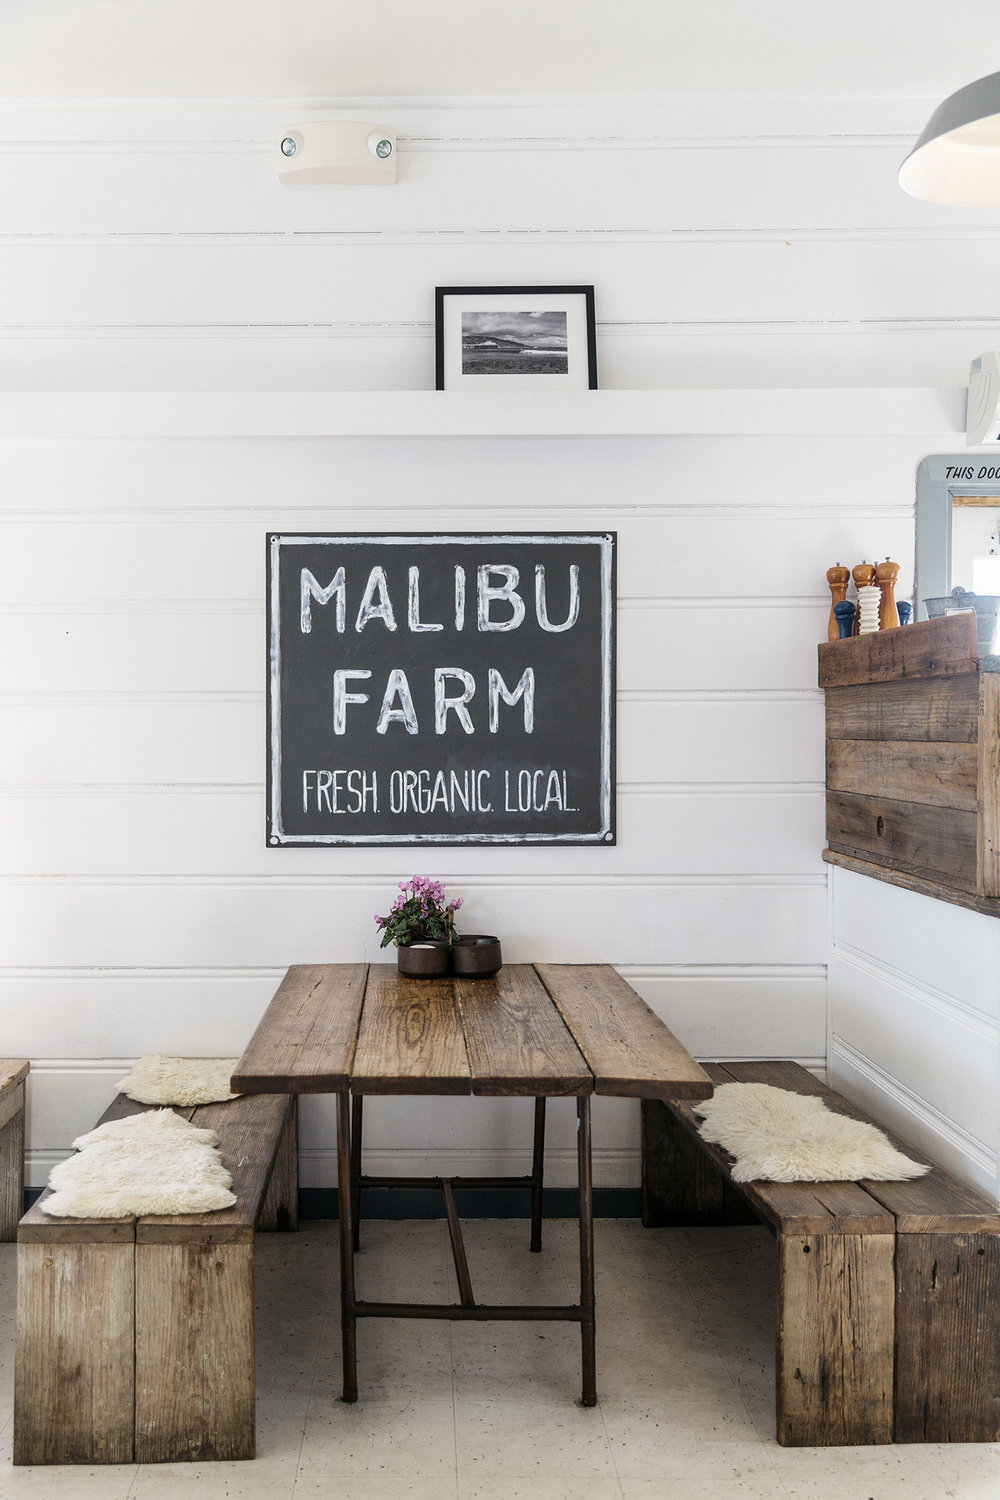 Malibu Farm, a restaurant out on the Malibu Pier by Rebecca Stumpf Colorado Denver Boulder Editorial and Commercial Food Travel and Lifestyle Photographer